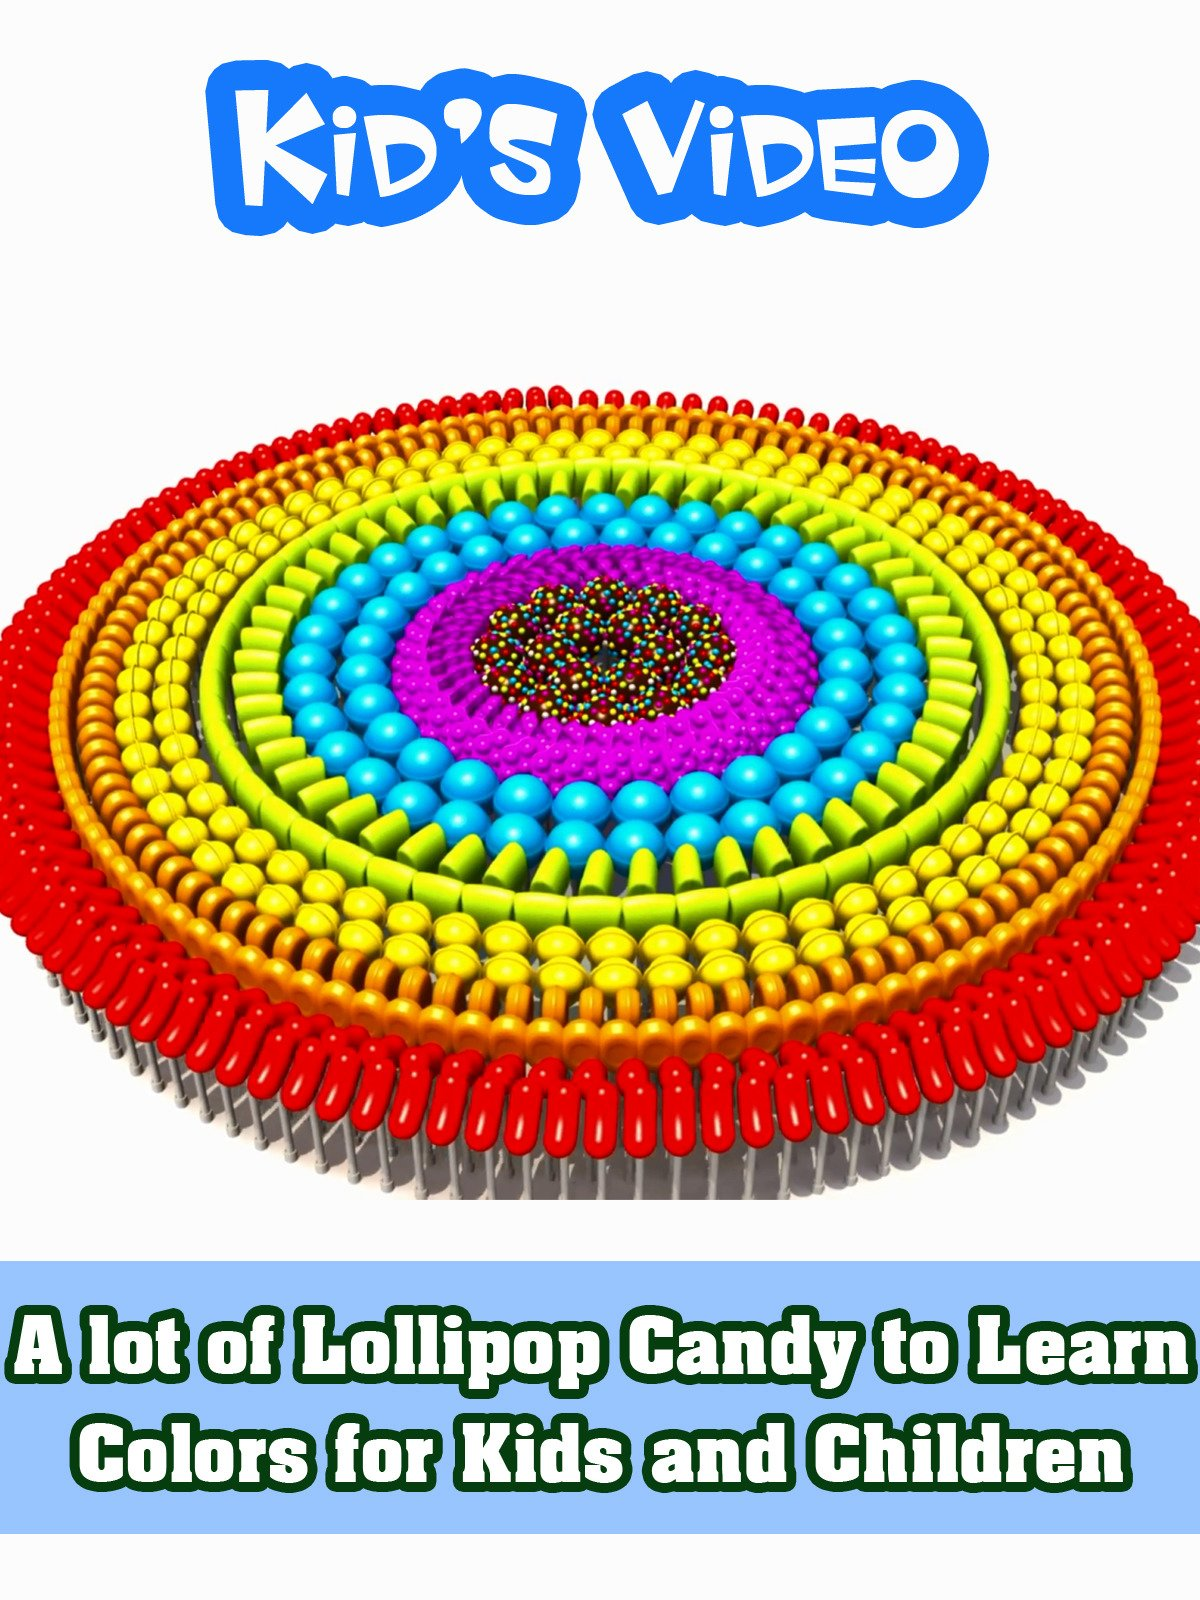 A lot of Lollipop Candy to Learn Colors for Kids and Children